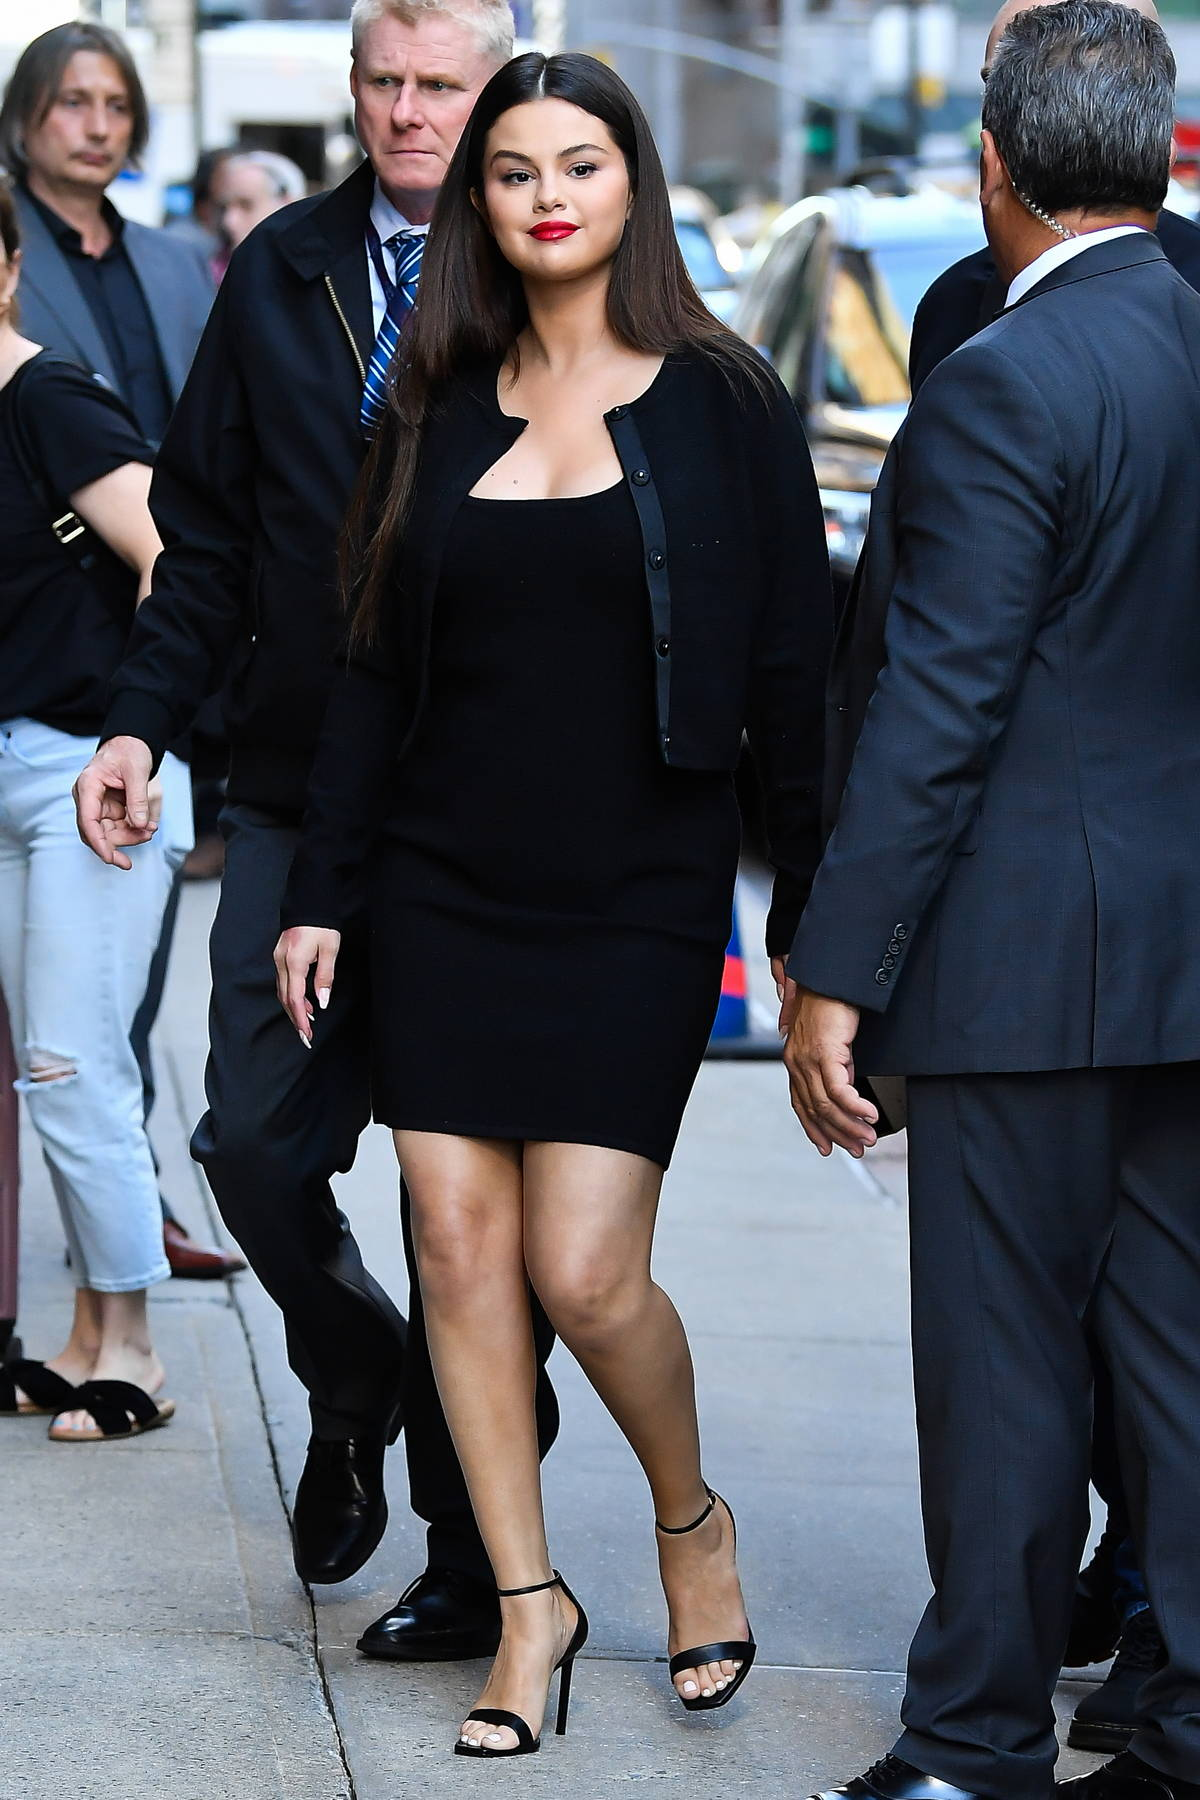 Selena Gomez looks stunning black while she makes an appearance on The Late Show with Stephen Colbert in New York City